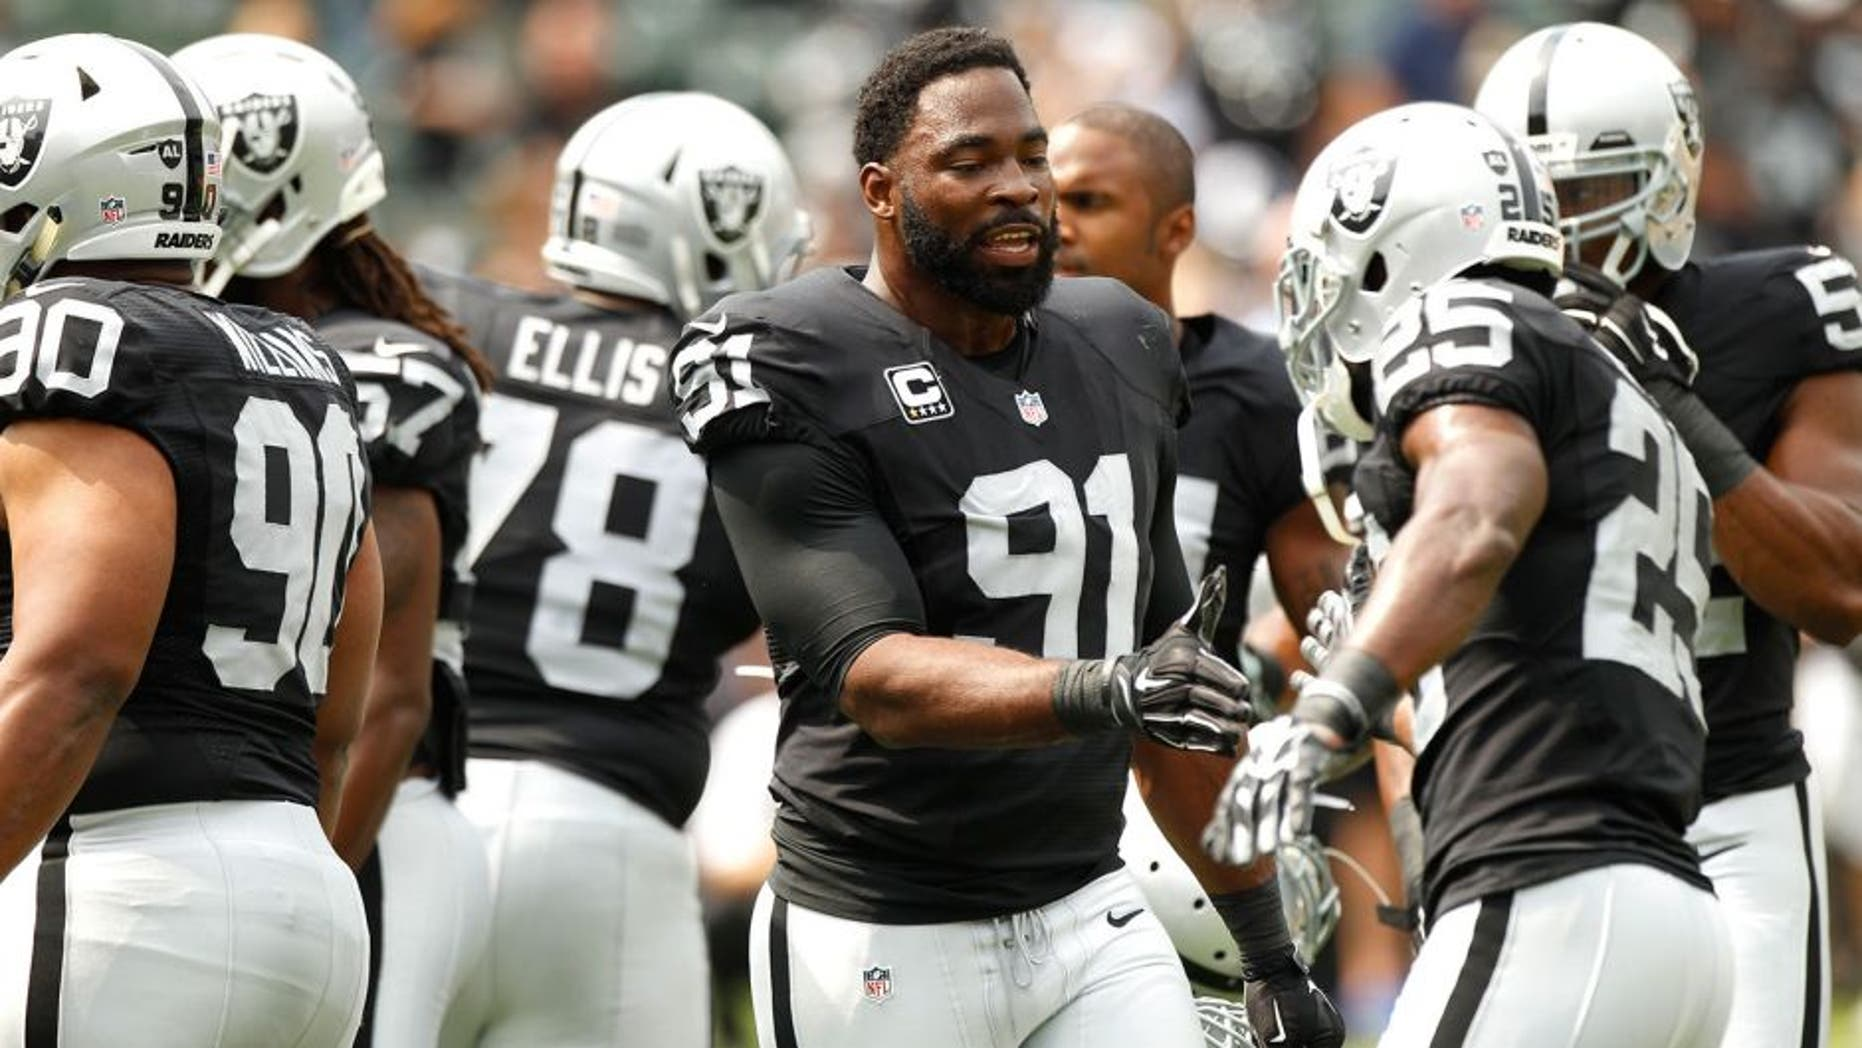 Sep 13, 2015; Oakland, CA, USA; Oakland Raiders defensive end Justin Tuck (91) talks with teammates before the start of the game against the Cincinnati Bengals at O.co Coliseum. Mandatory Credit: Cary Edmondson-USA TODAY Sports